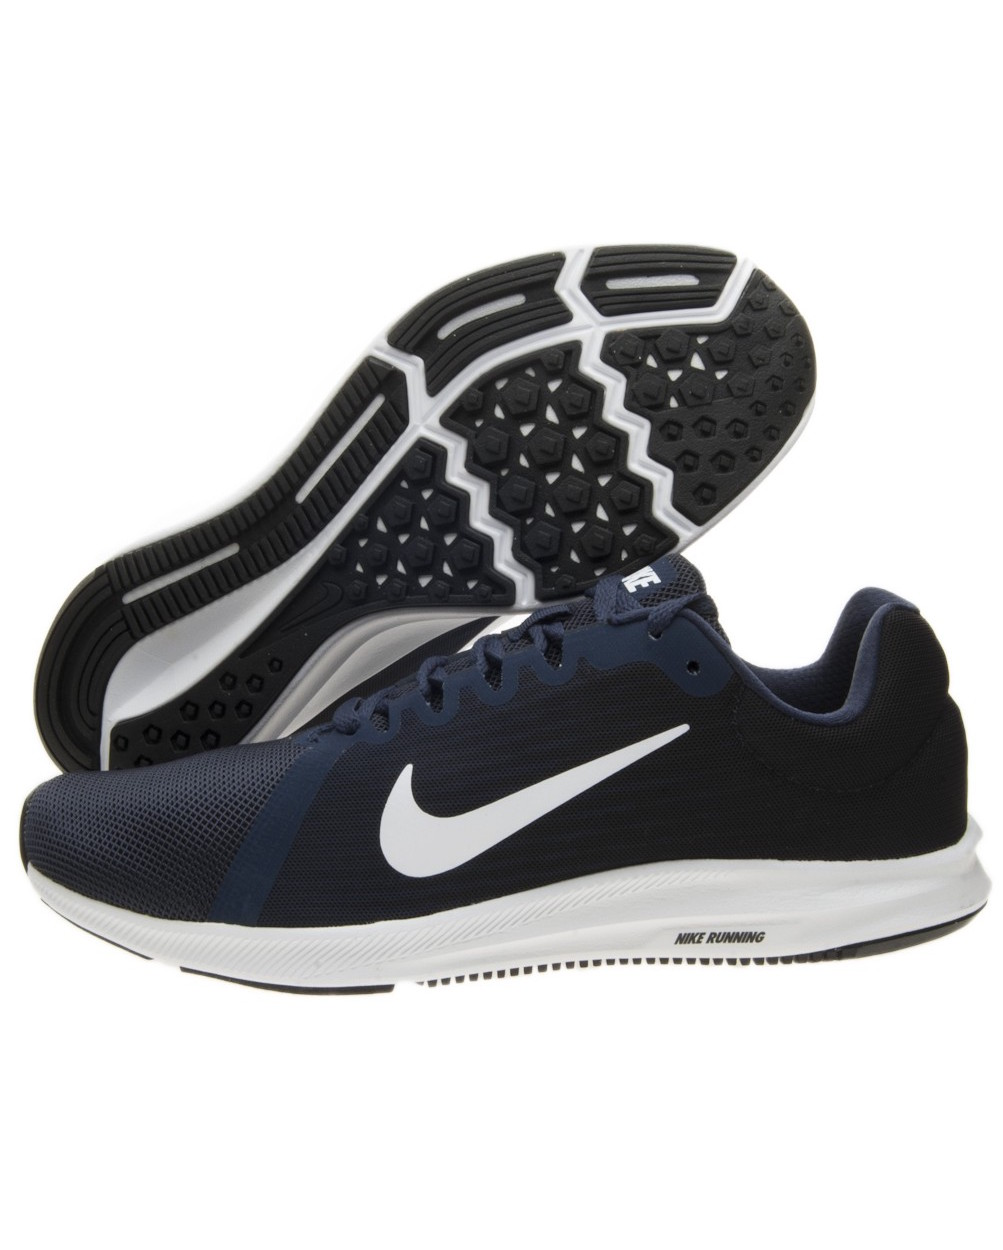 Nike Scarpe Palestra Jogging Ginnastica Sneakers Running DownShifter 8 Blu fdc099256bf